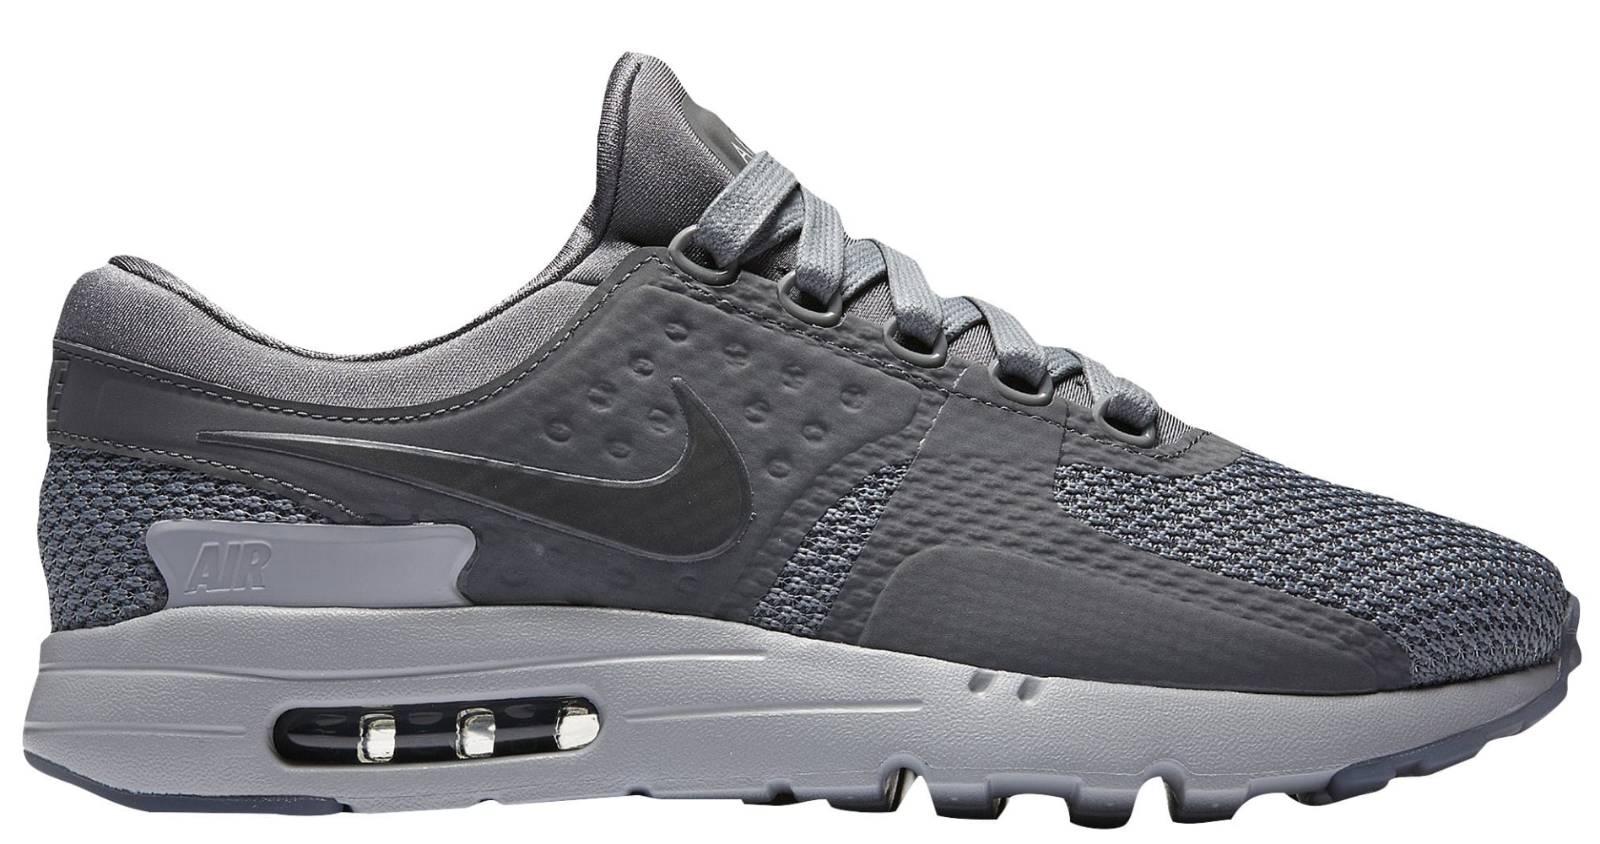 NEW homme chaussures Nike Air Max Zero chaussures homme Baskets Taille: 6 Color: Gray f7221b